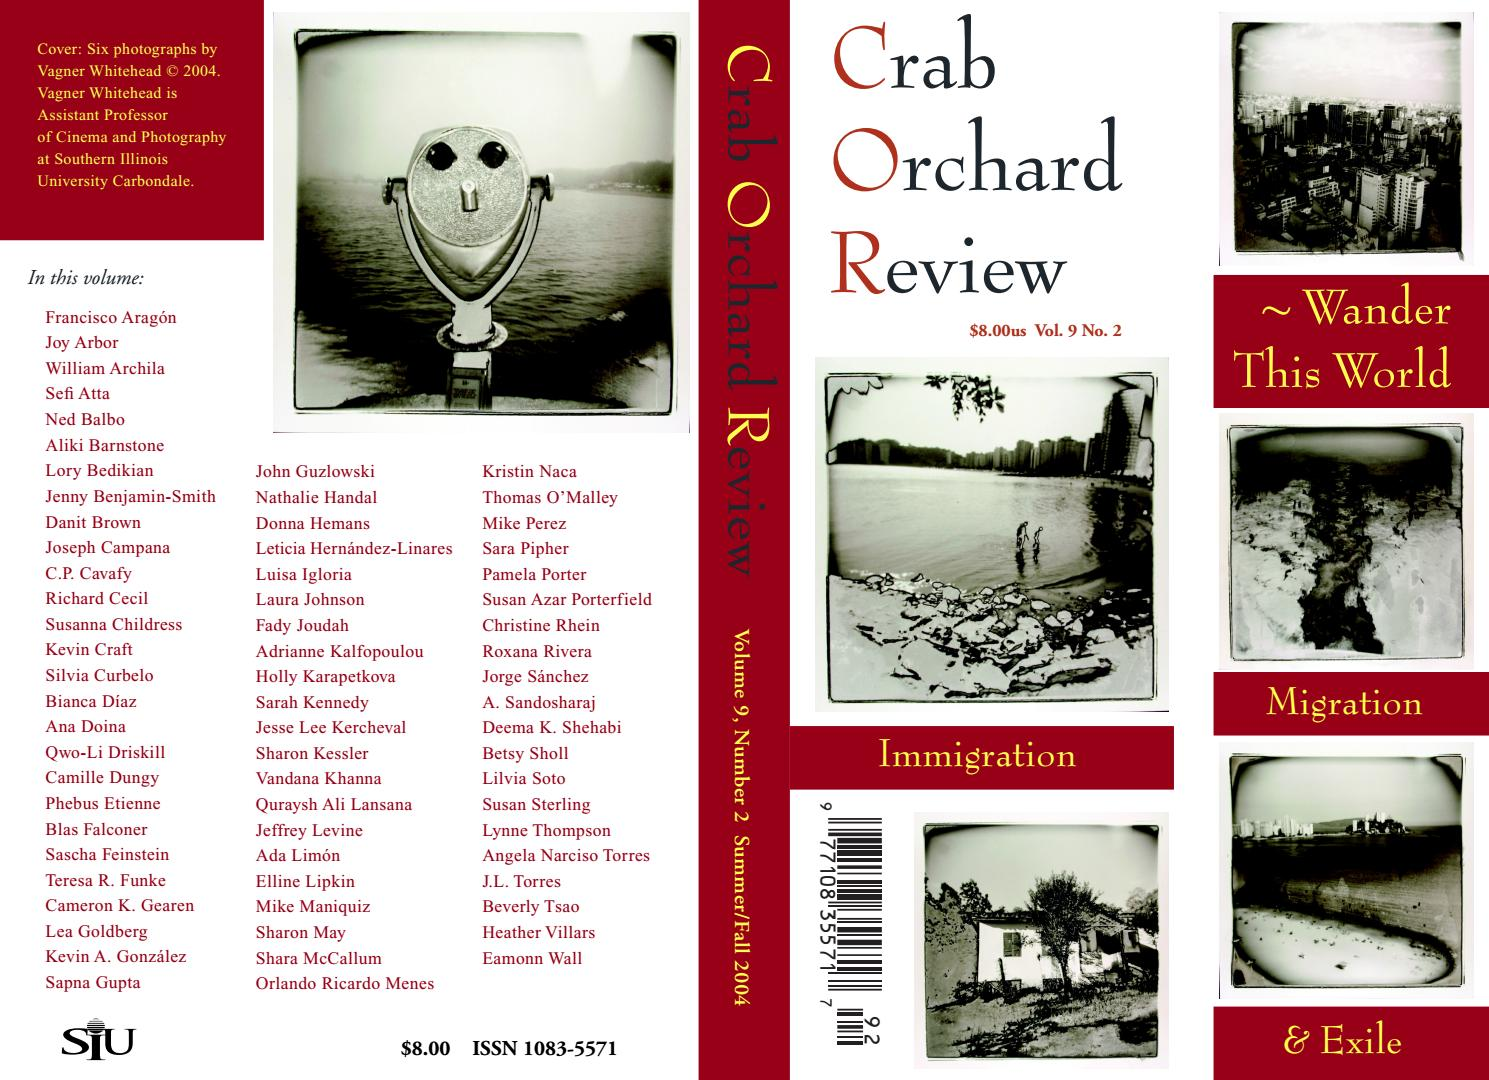 71018d1cf978 Crab Orchard Review Vol 9 No 2 S/F 2004 by Crab Orchard Review - issuu